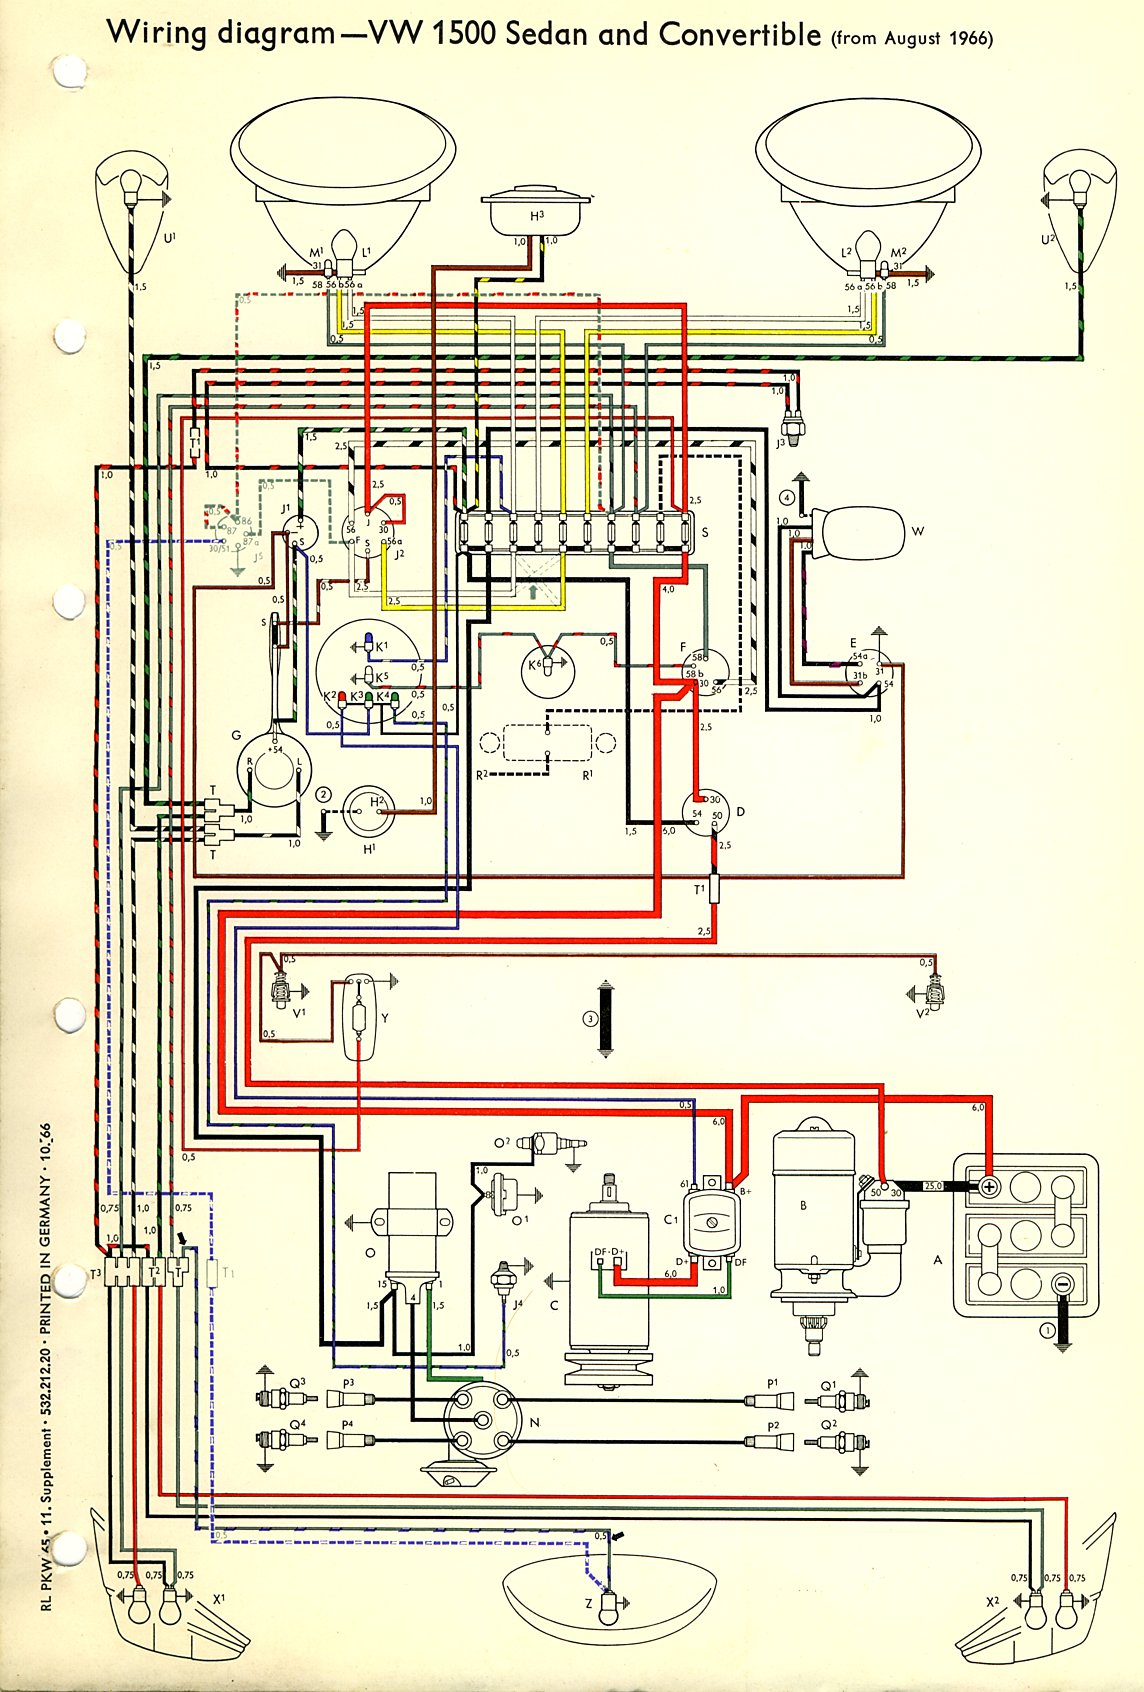 1974 Vw Buggy Wiring